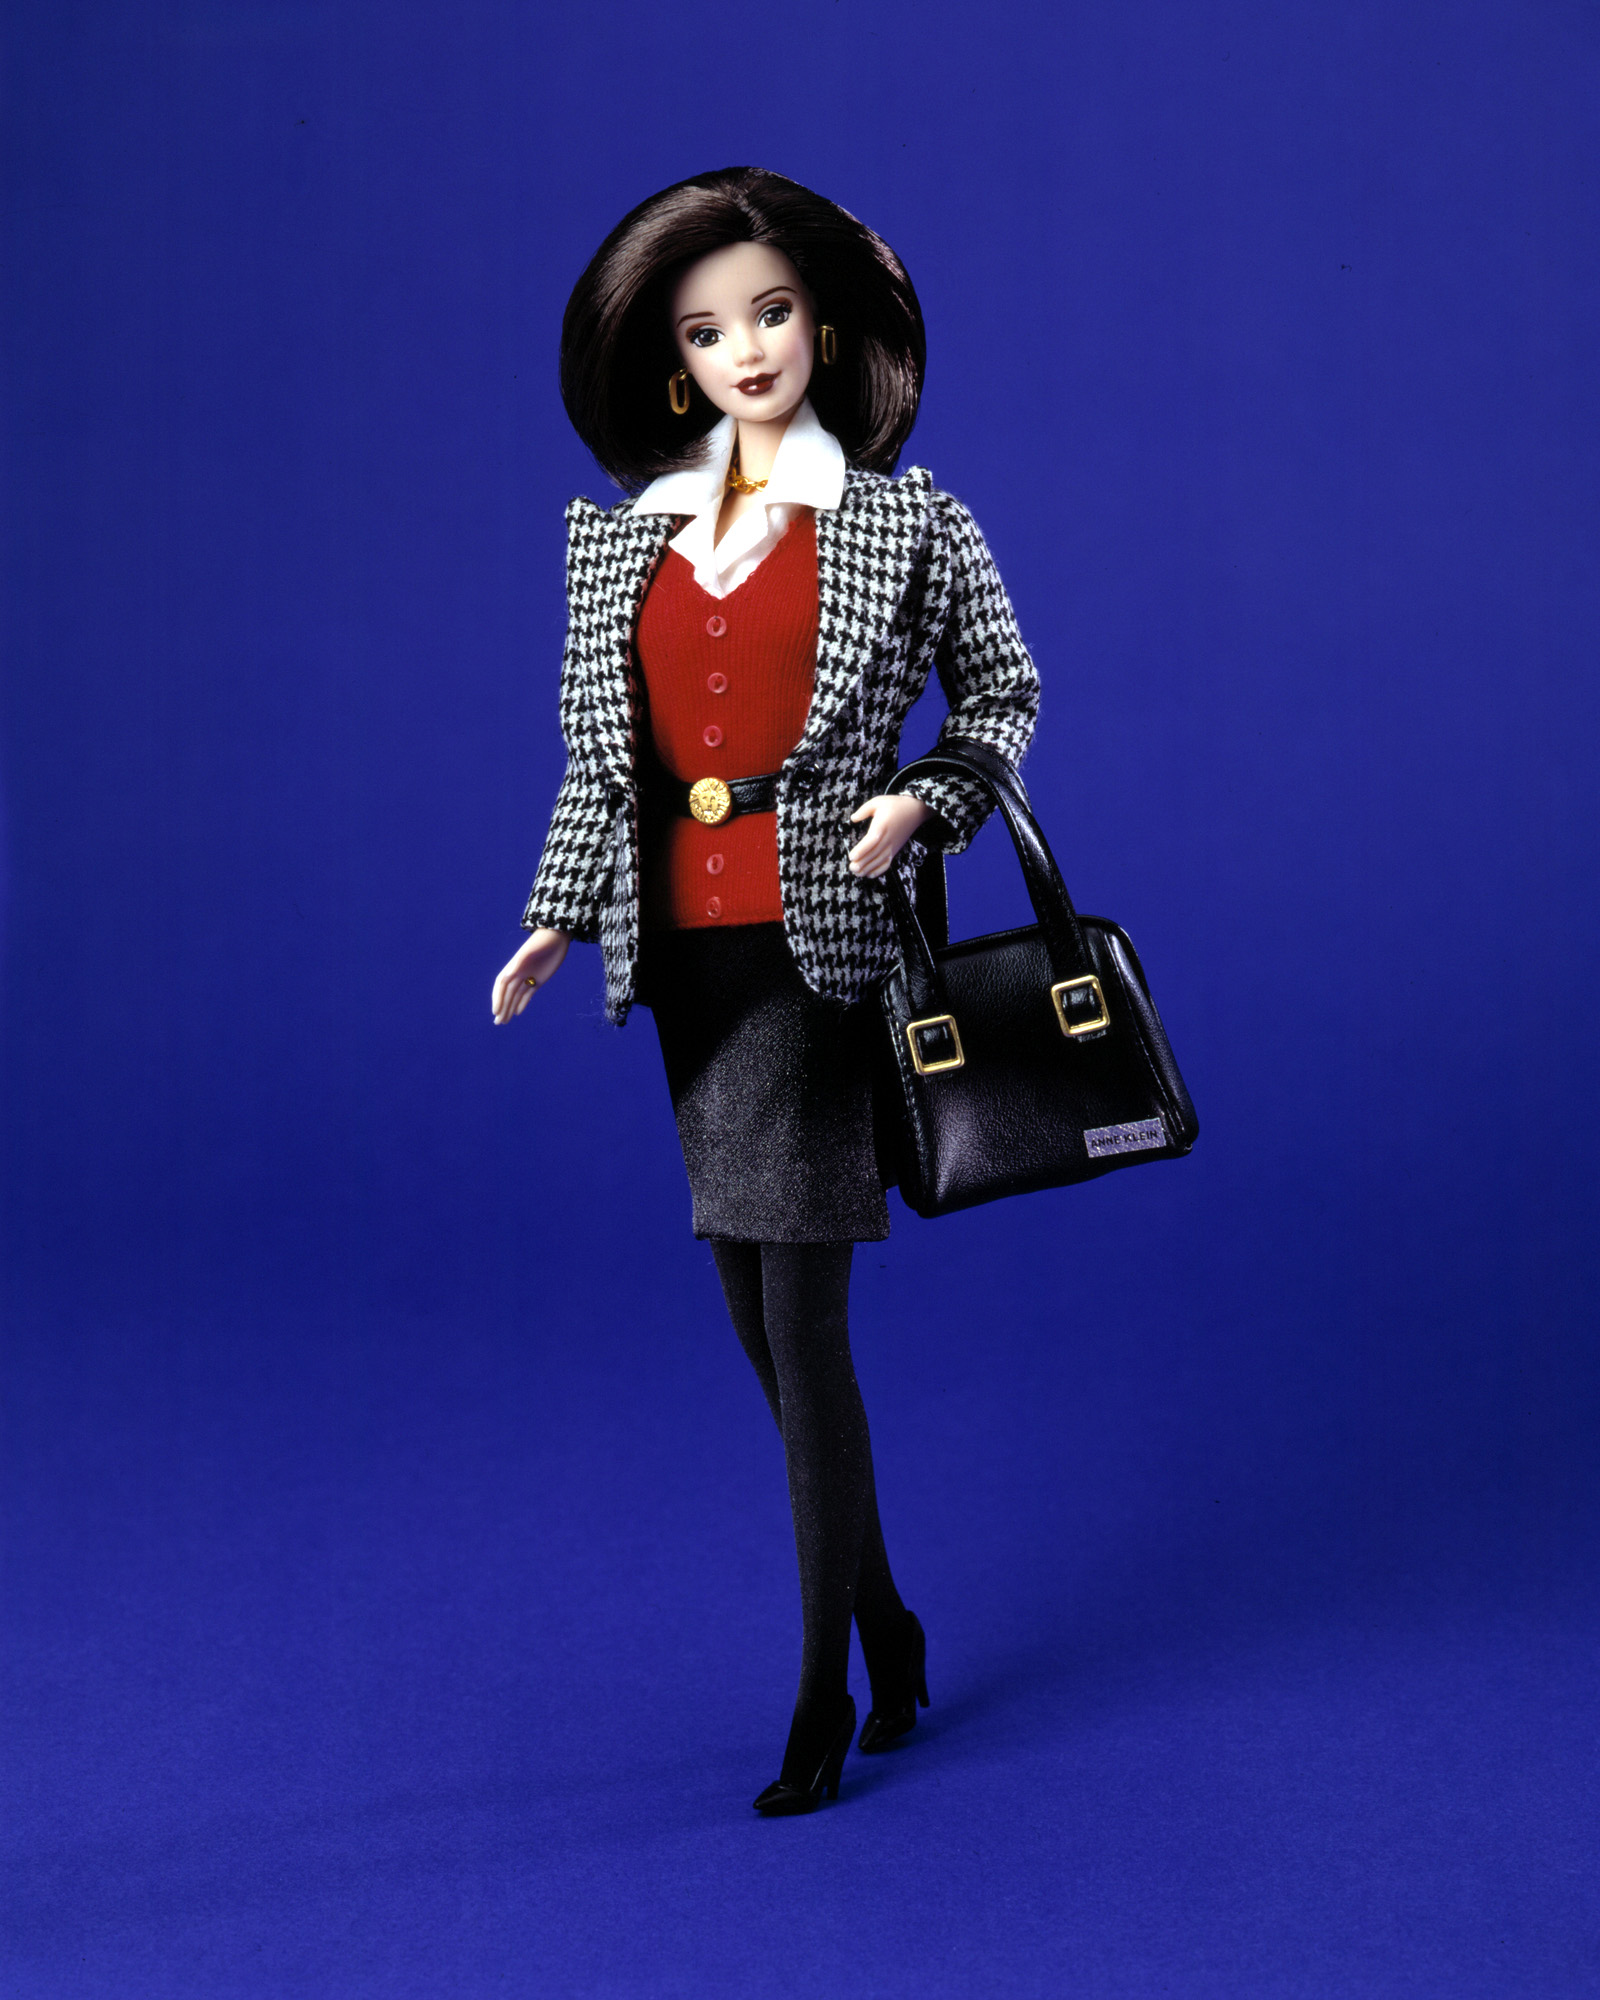 The Anne Klein Barbie Doll, released in 1997.